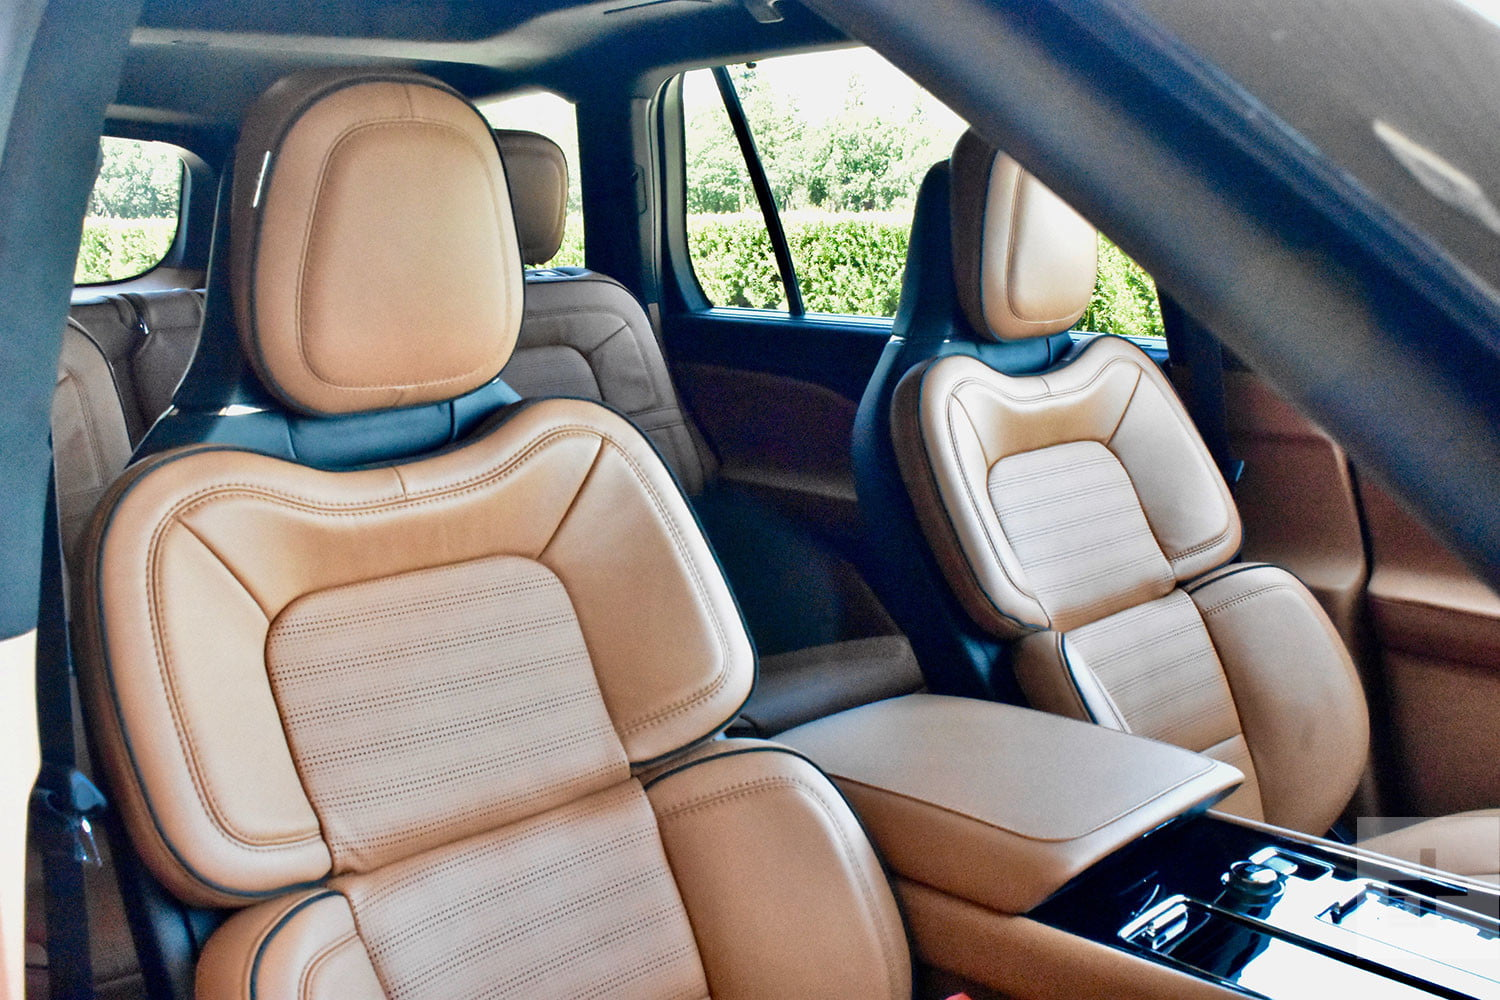 2020 Lincoln Aviator First Drive Review: This SUV Really